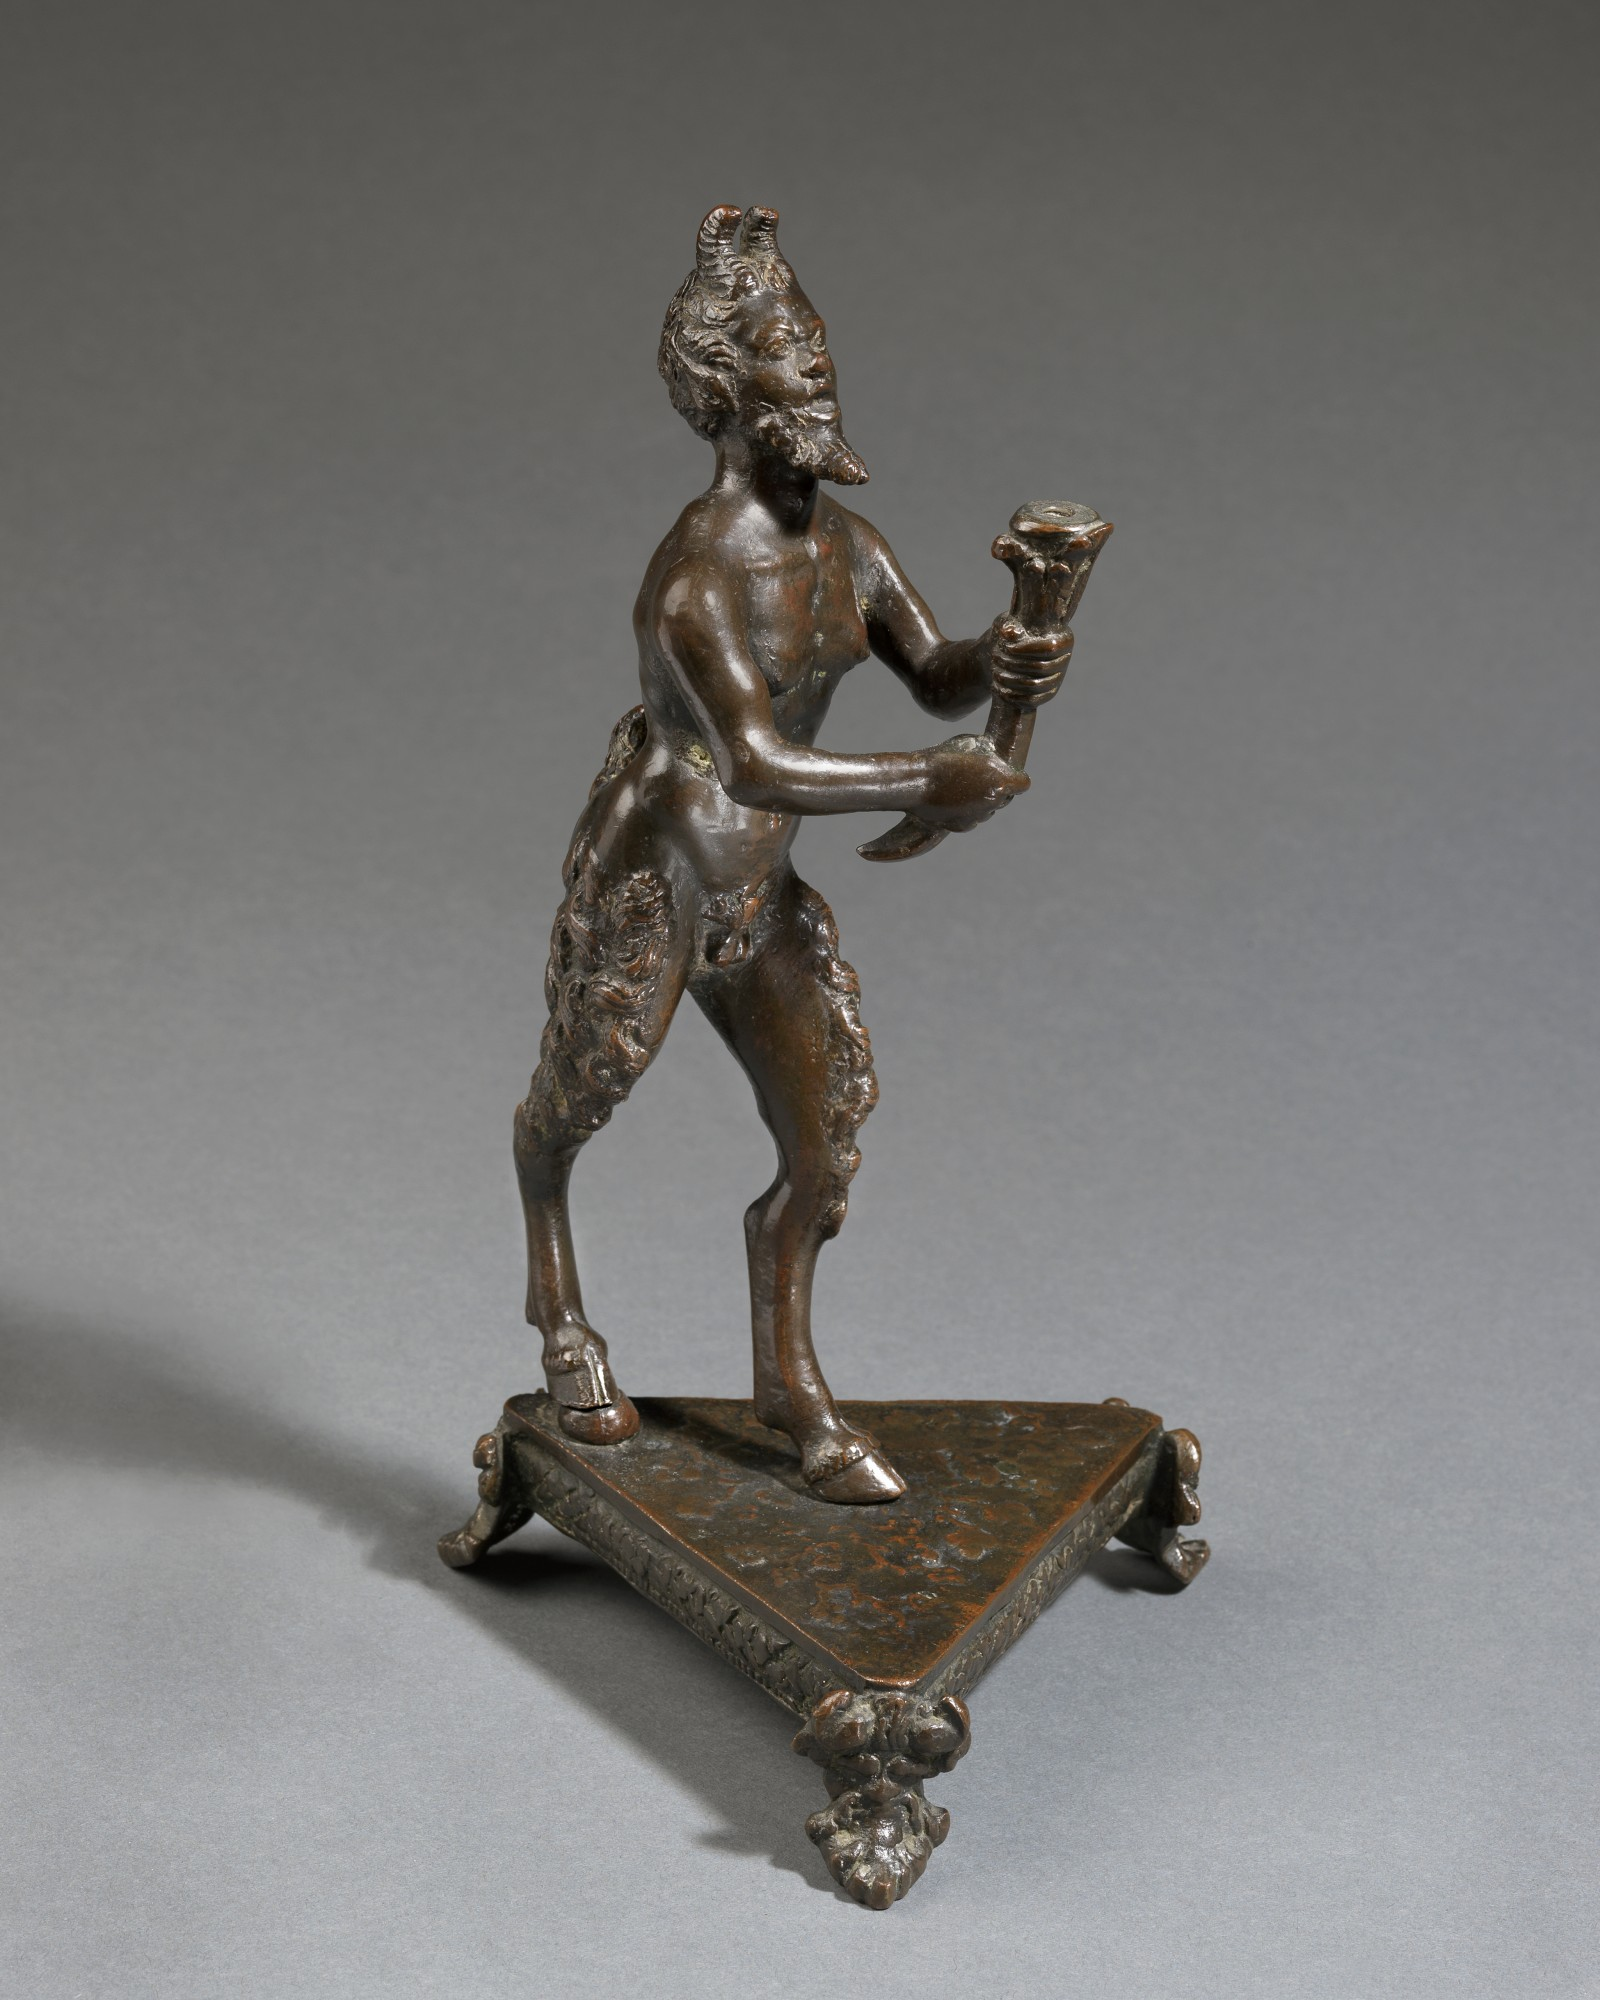 Faun, Attributed to the workshop of Desiderio da Firenze(active Padua 1532 – 1545), Italy, Pad